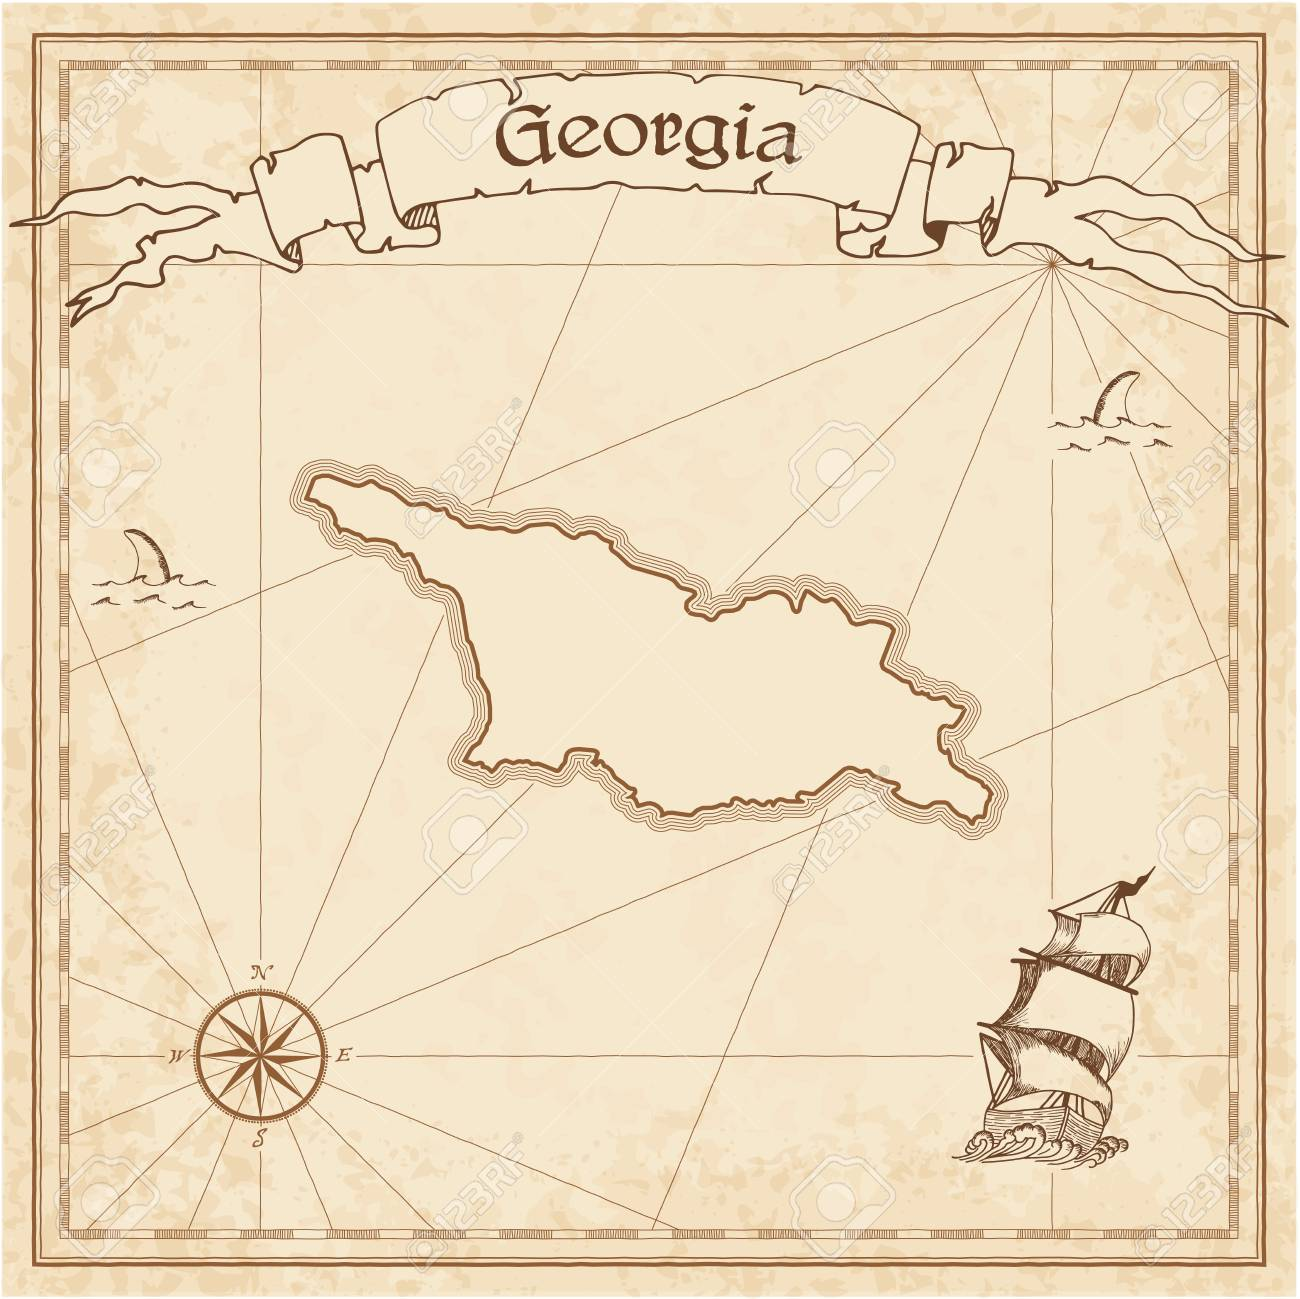 Map Of Old Georgia.Georgia Old Treasure Map Sepia Engraved Template Of Pirate Map